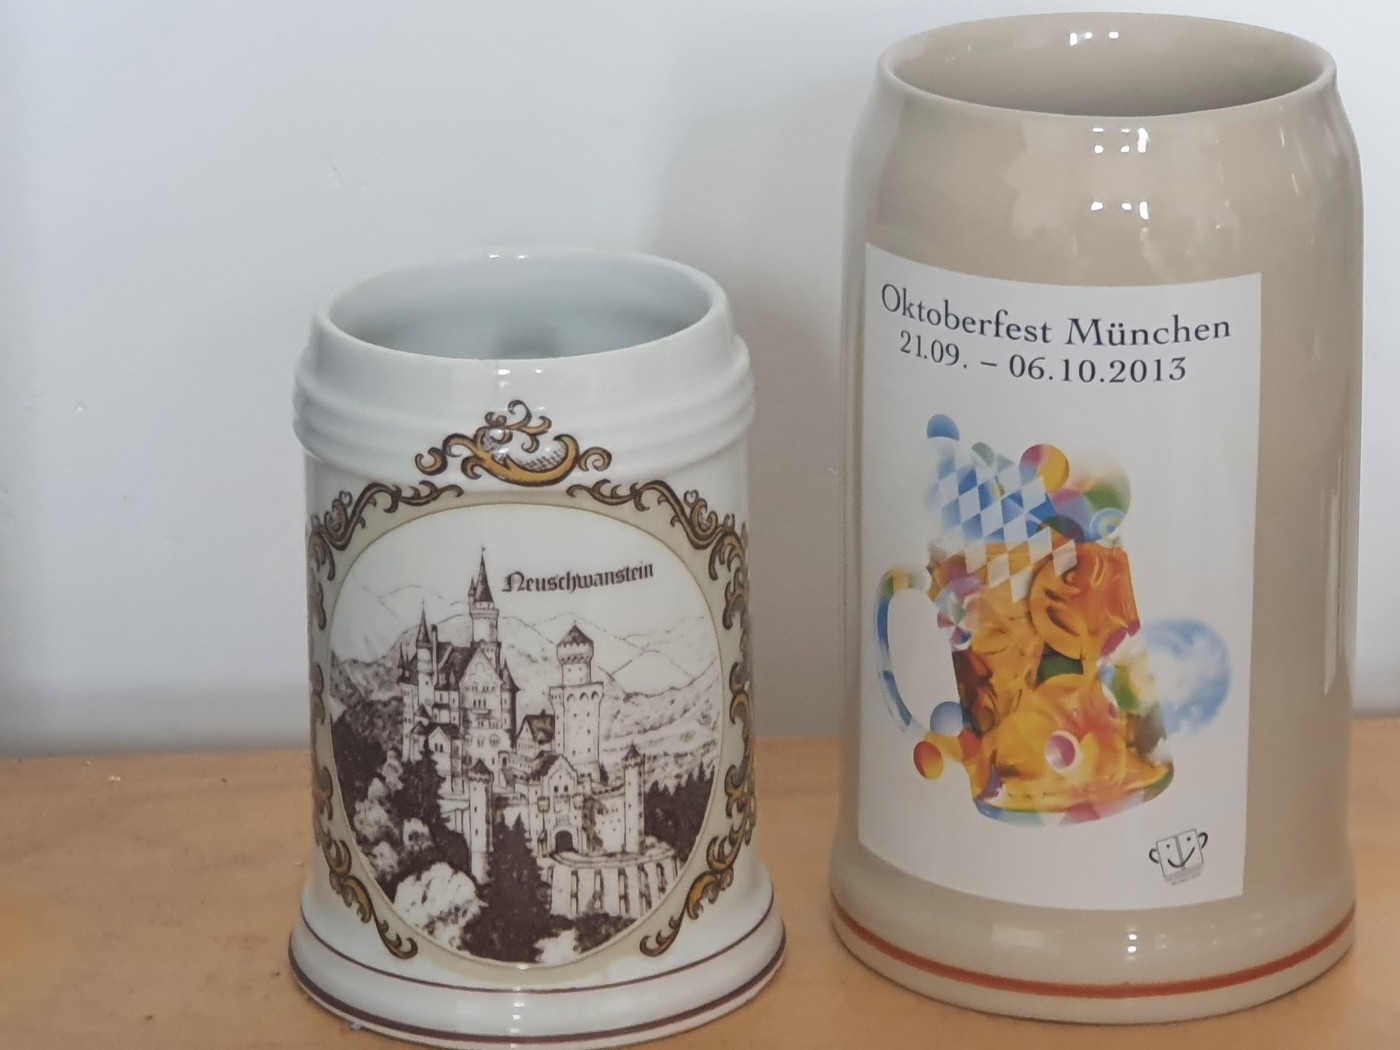 Two pewter beer steins side by side. One shows a picture of Neuschwanstein Castle and the other shows the logo for the Munich Beer Festival 2013